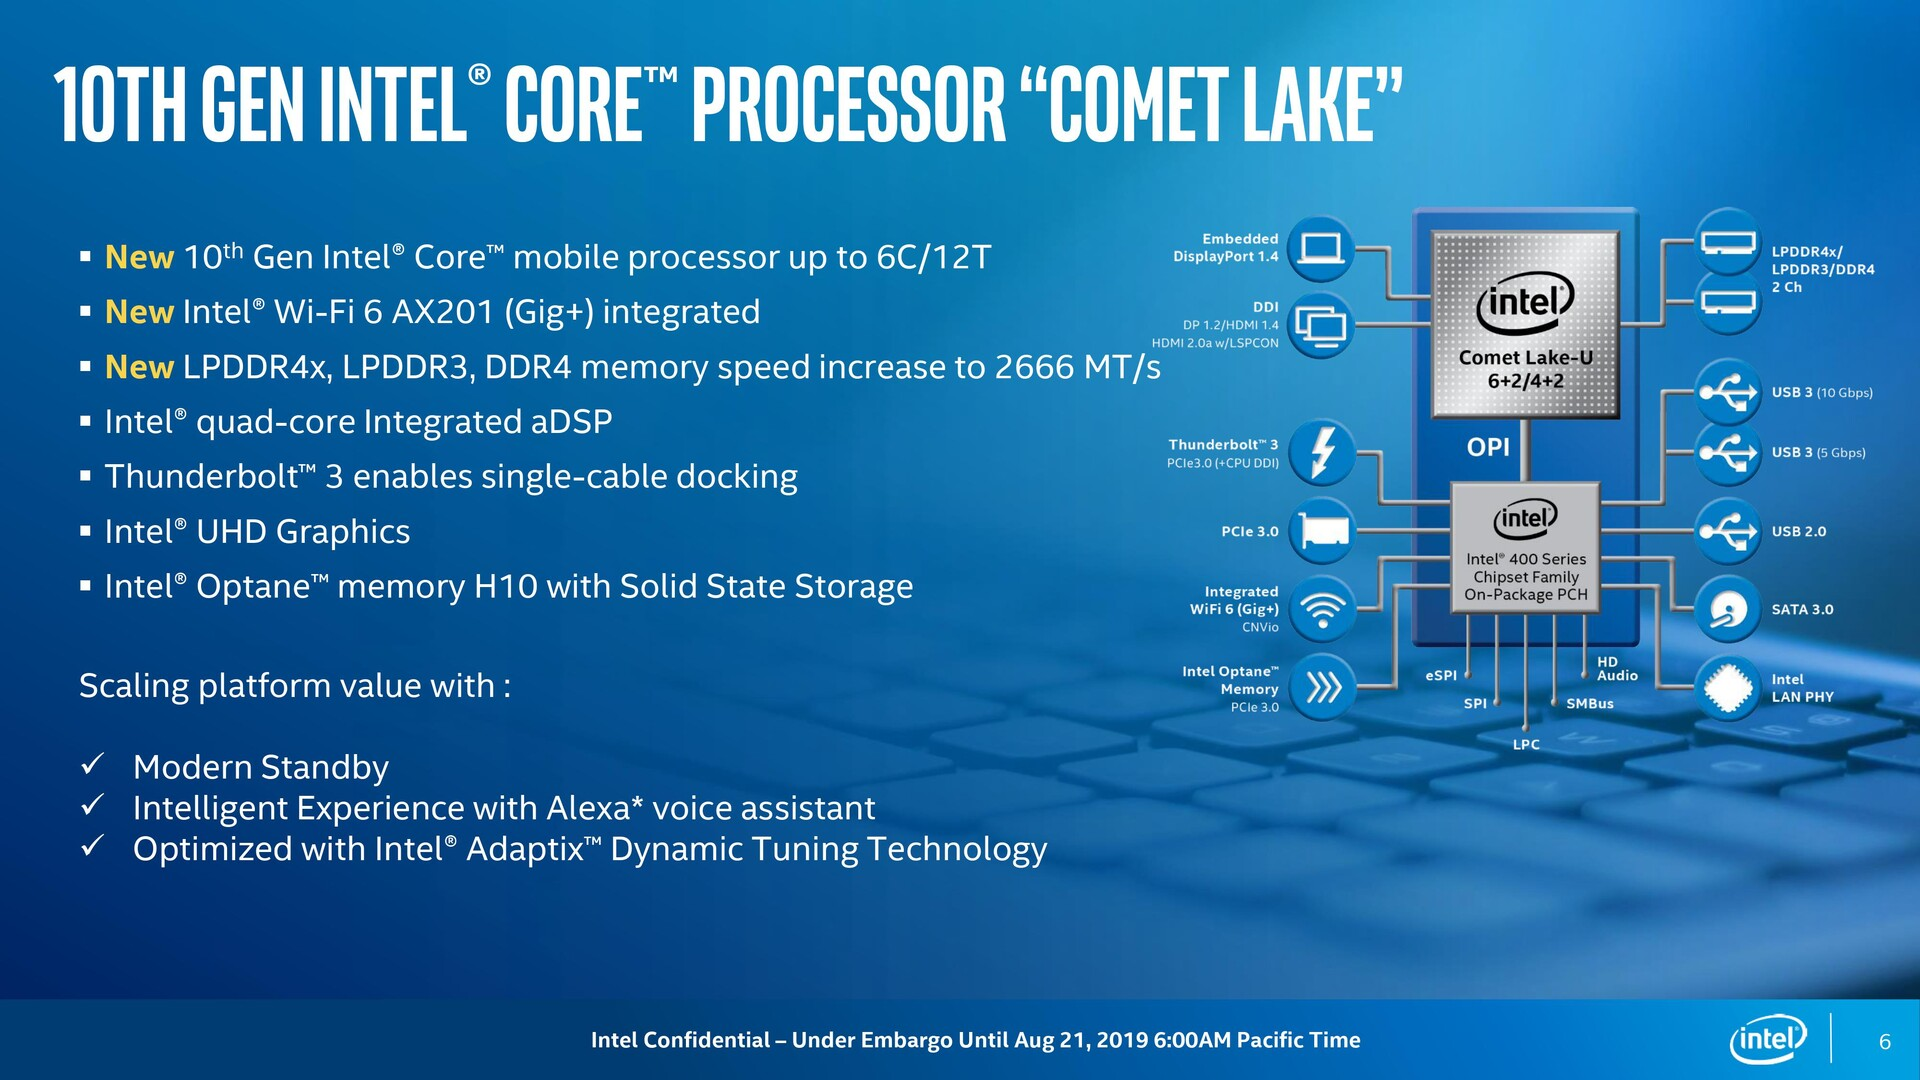 Intel launches Comet Lake-U and Comet Lake-Y | Techno FAQ